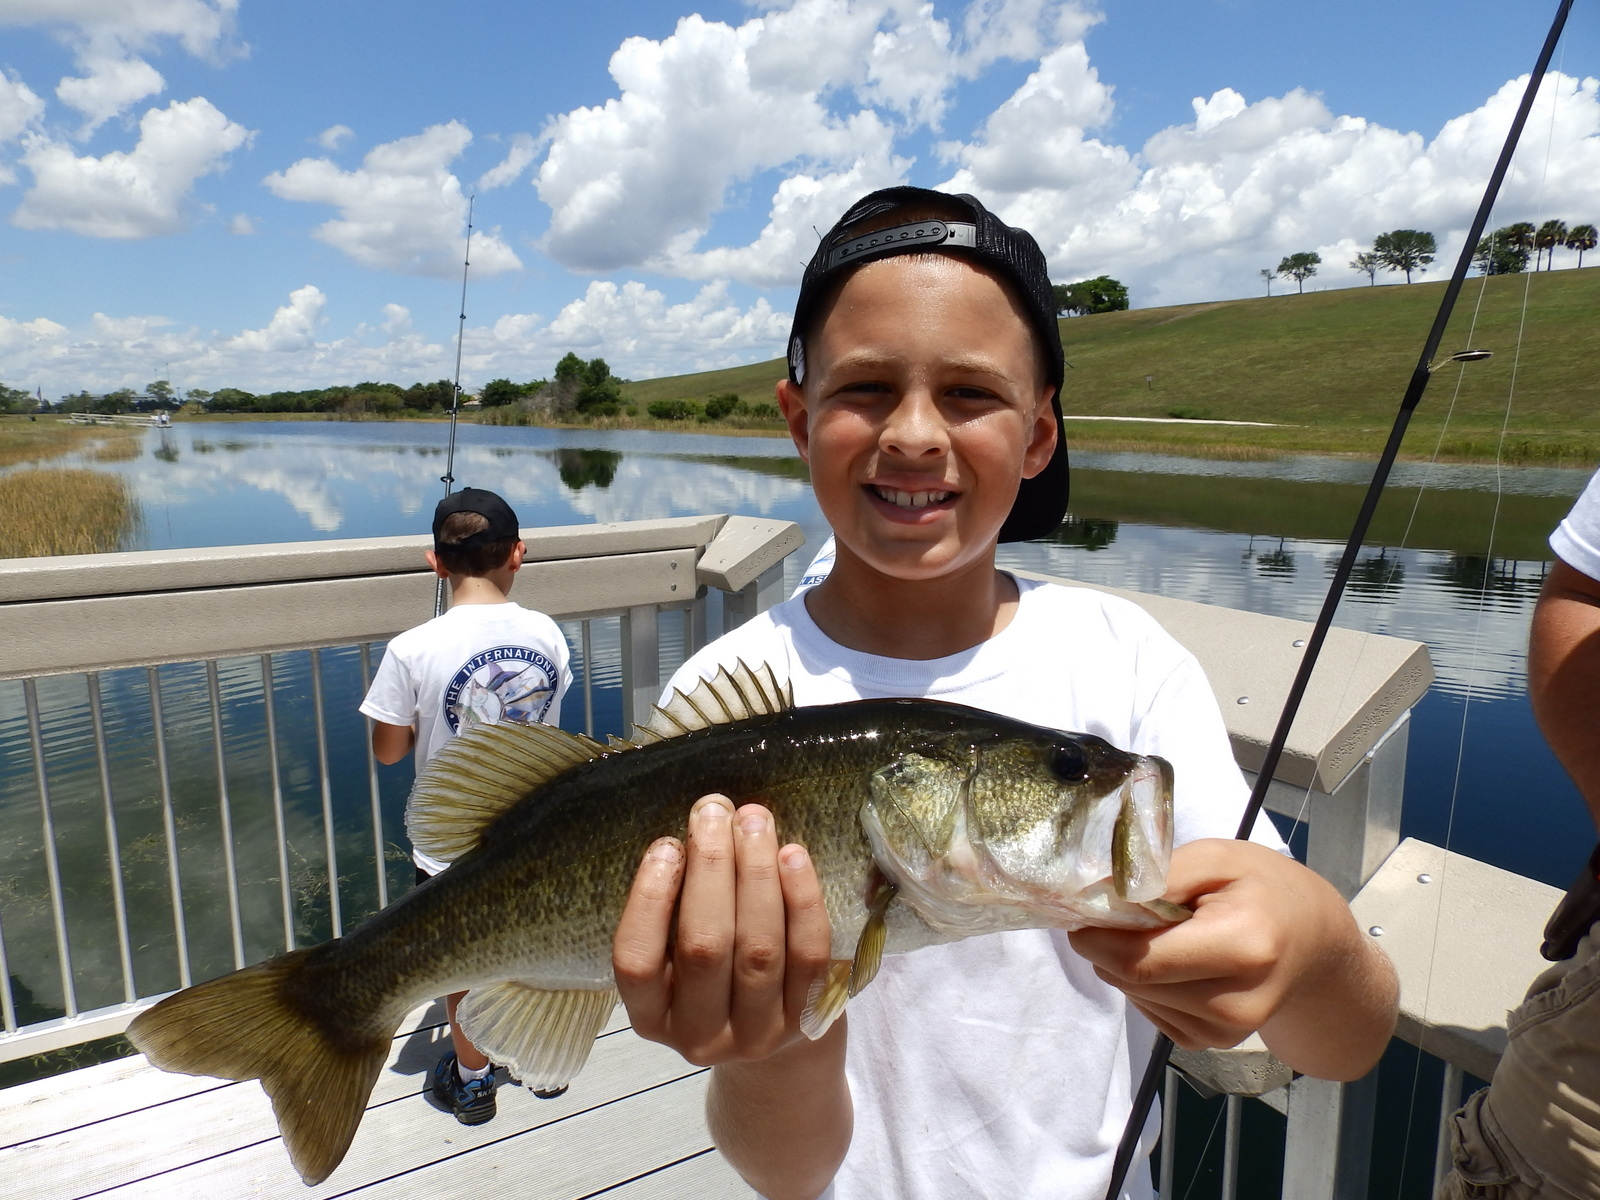 Igfa fishing summer camp for Fishing summer camp